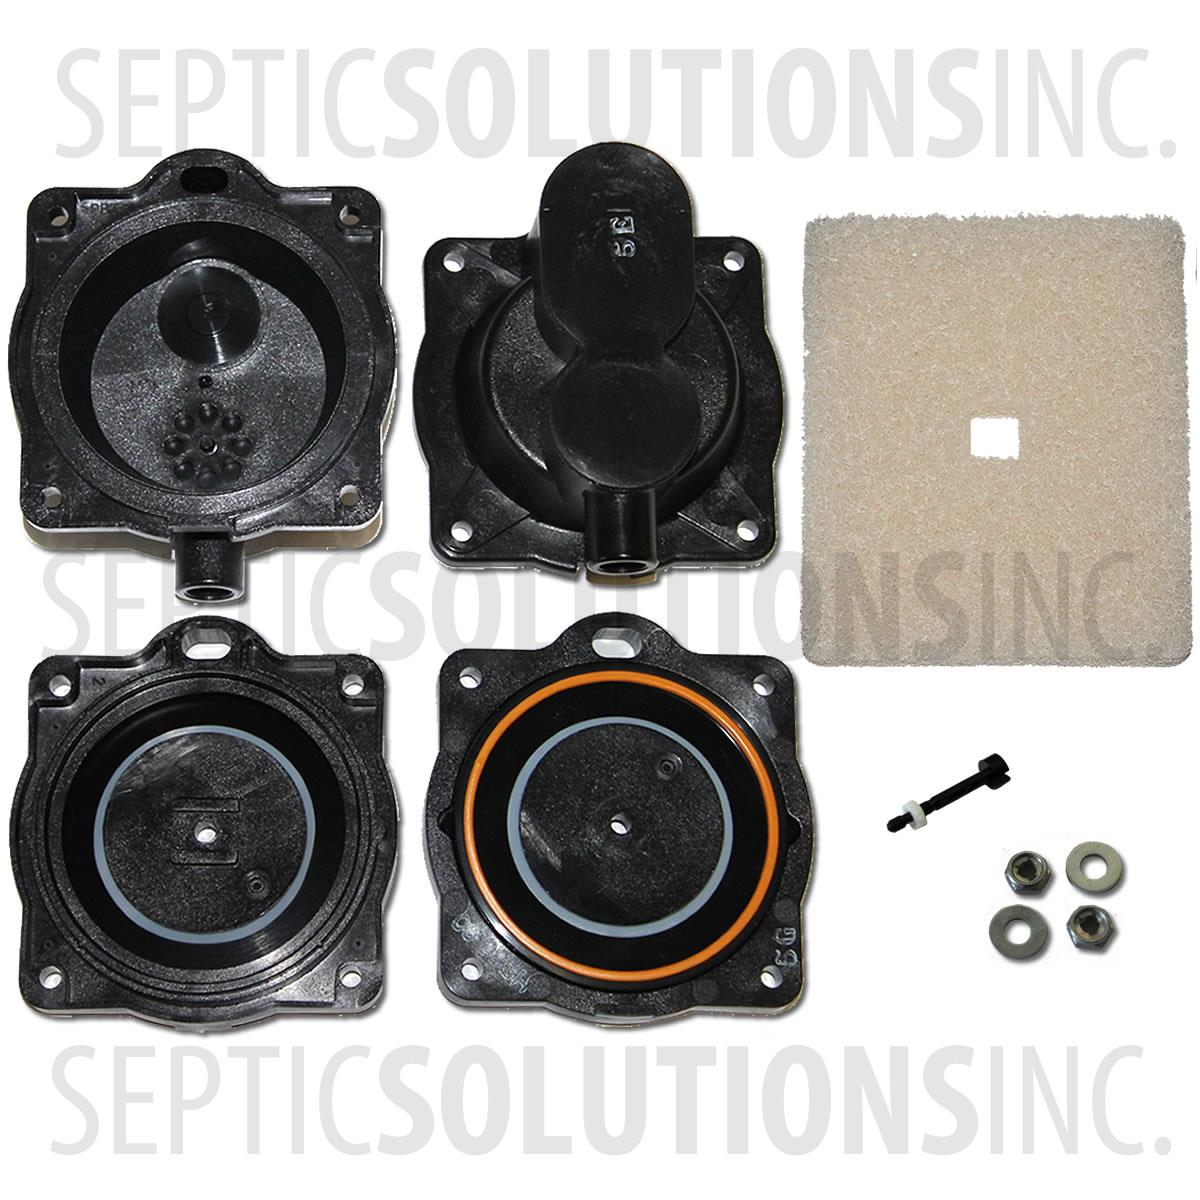 80PC000042_1?w=270 clearstream aerobic septic system air pumps and repair parts  at gsmportal.co